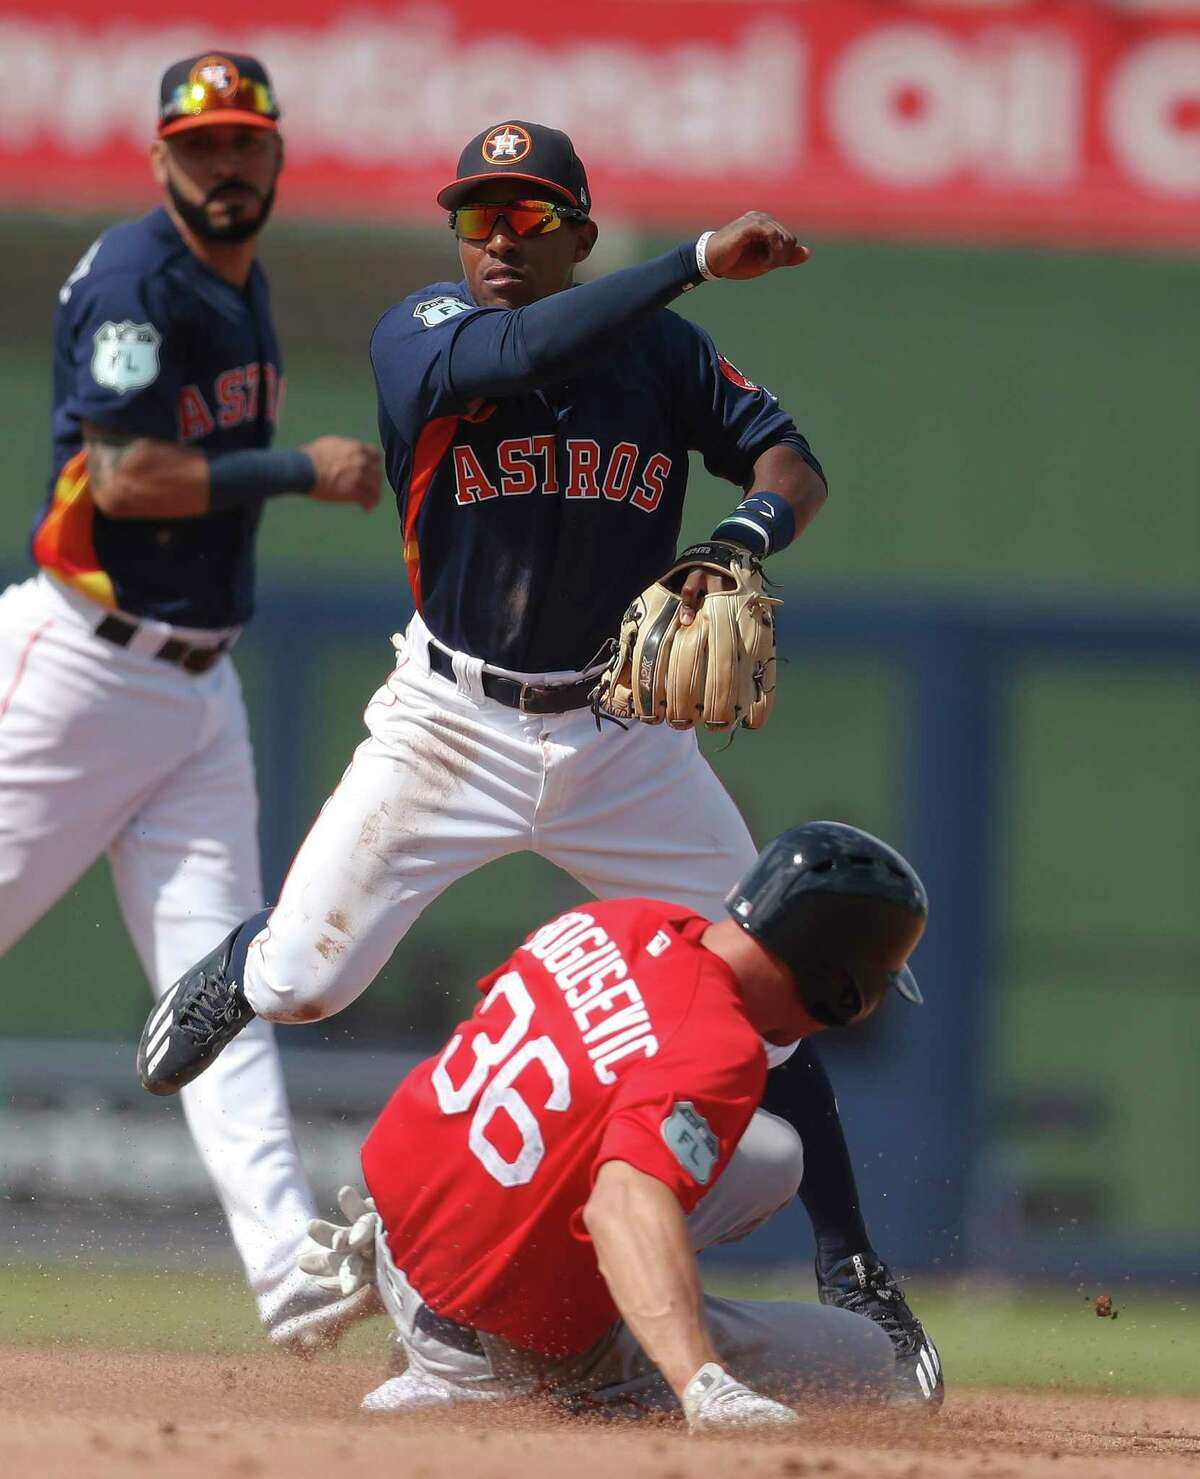 Tony Kemp will replace Teoscar Hernandez on the Astros' active roster after Hernandez was injured in a collision with Jose Altuve on Tuesday.